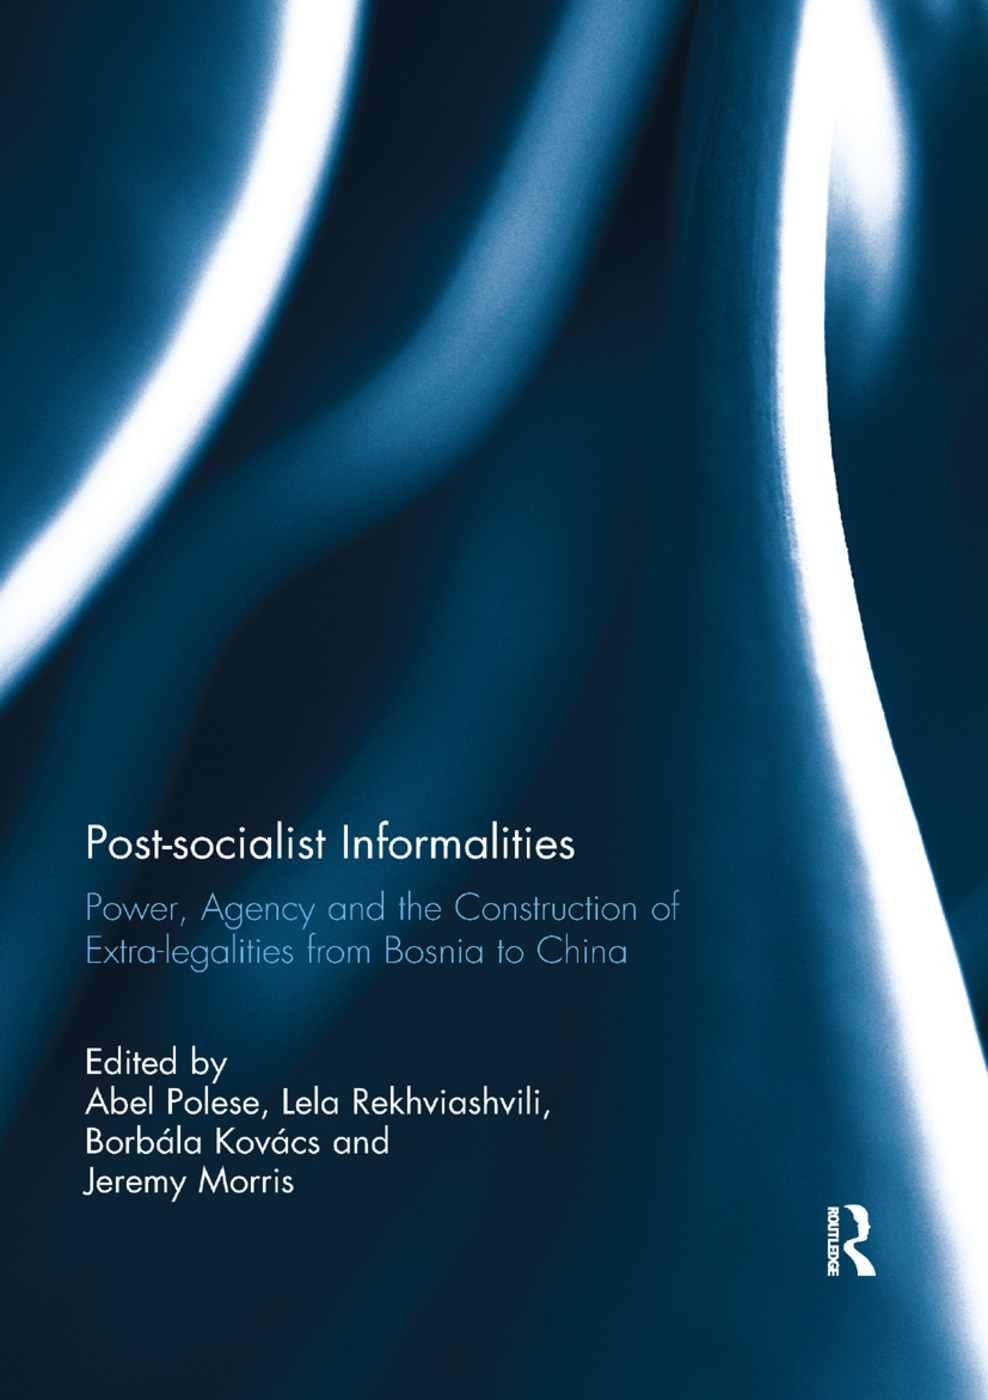 Post-socialist Informalities: Power, Agency and the Construction of Extra-legalities from Bosnia to China book cover